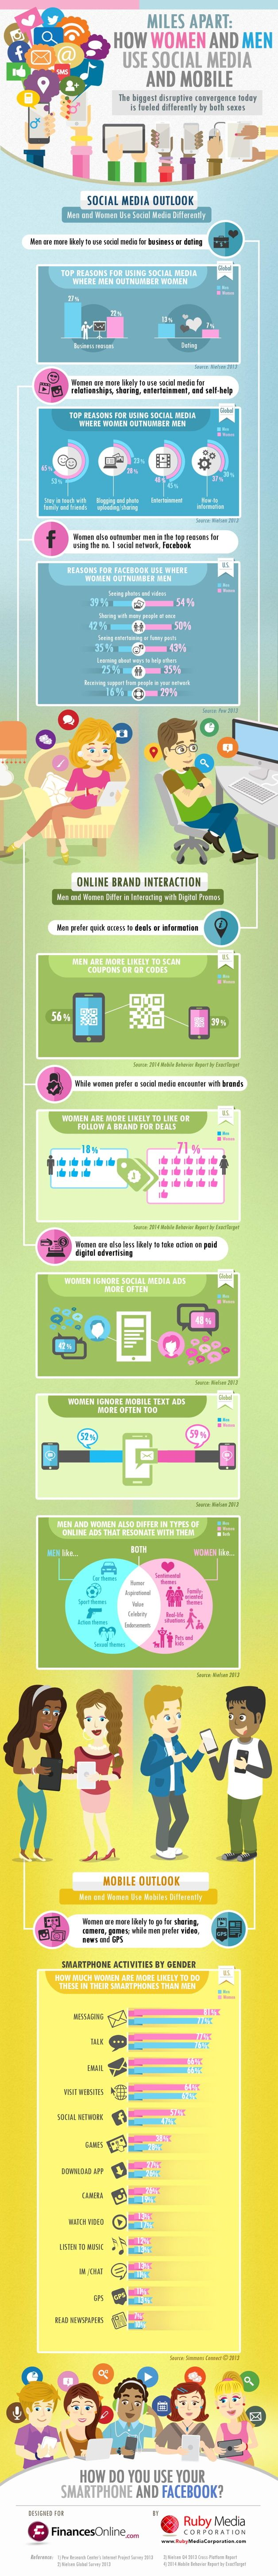 Pin by TribalCafe on Mobile Marketing Infographics | Pinterest